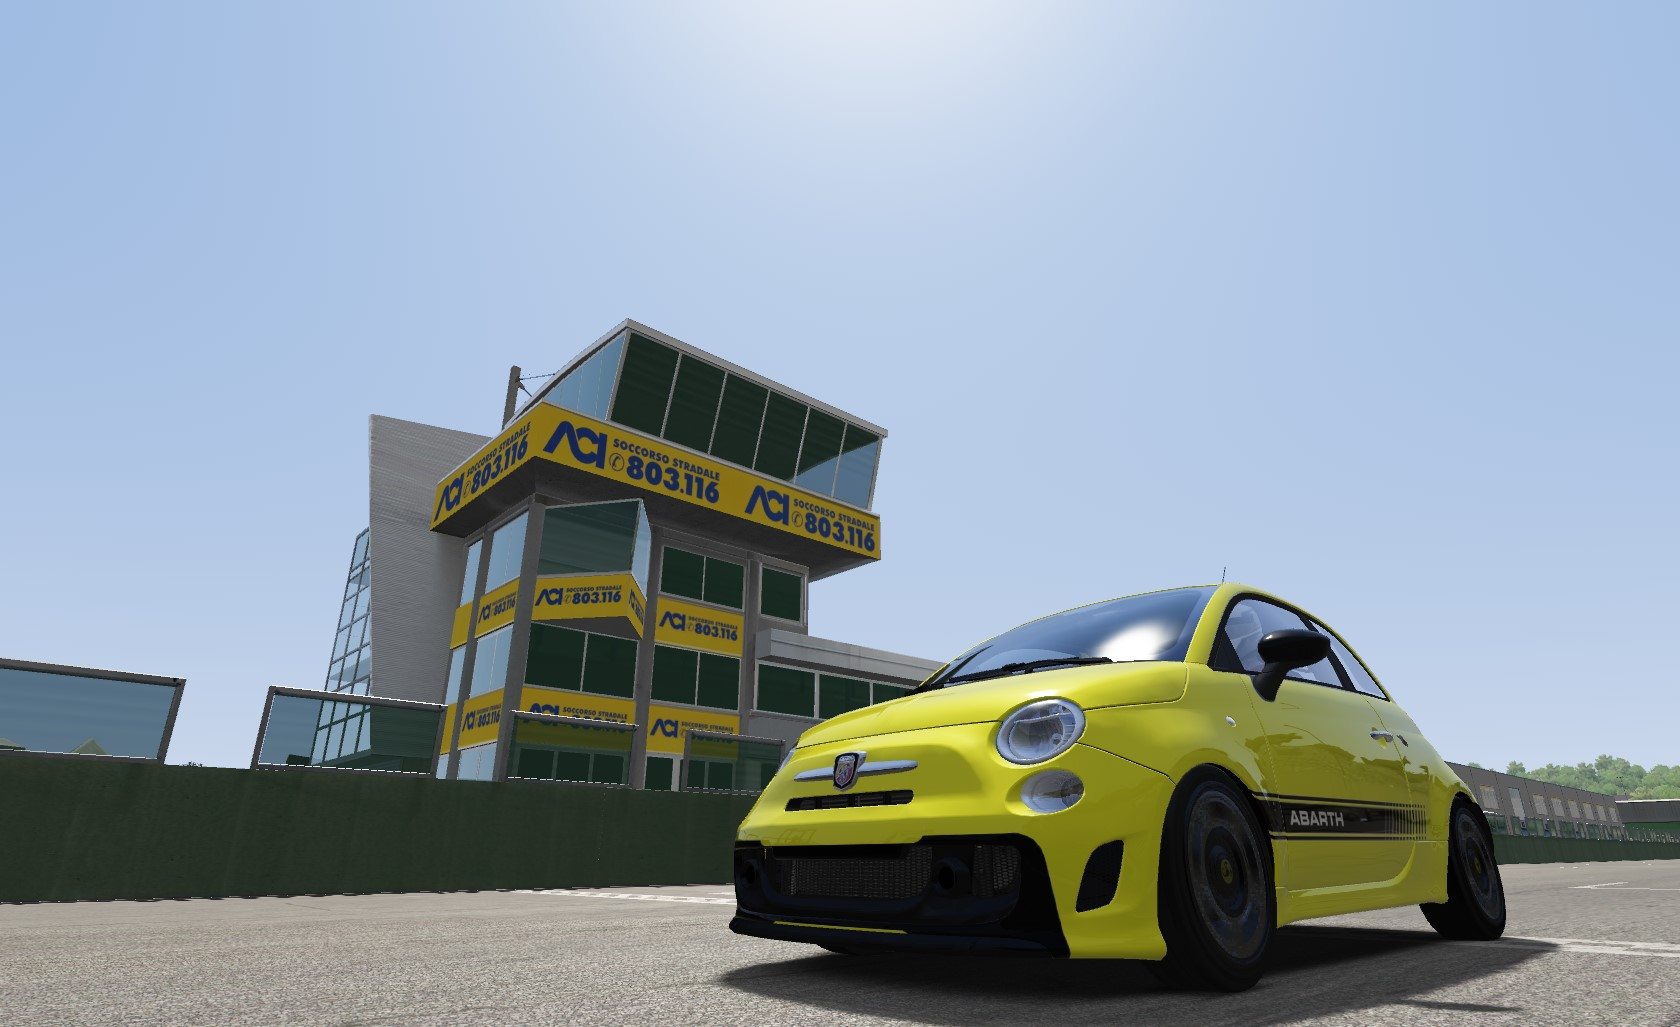 Screenshot_abarth500_s1_ks_vallelunga_31-8-117-17-20-58.jpg